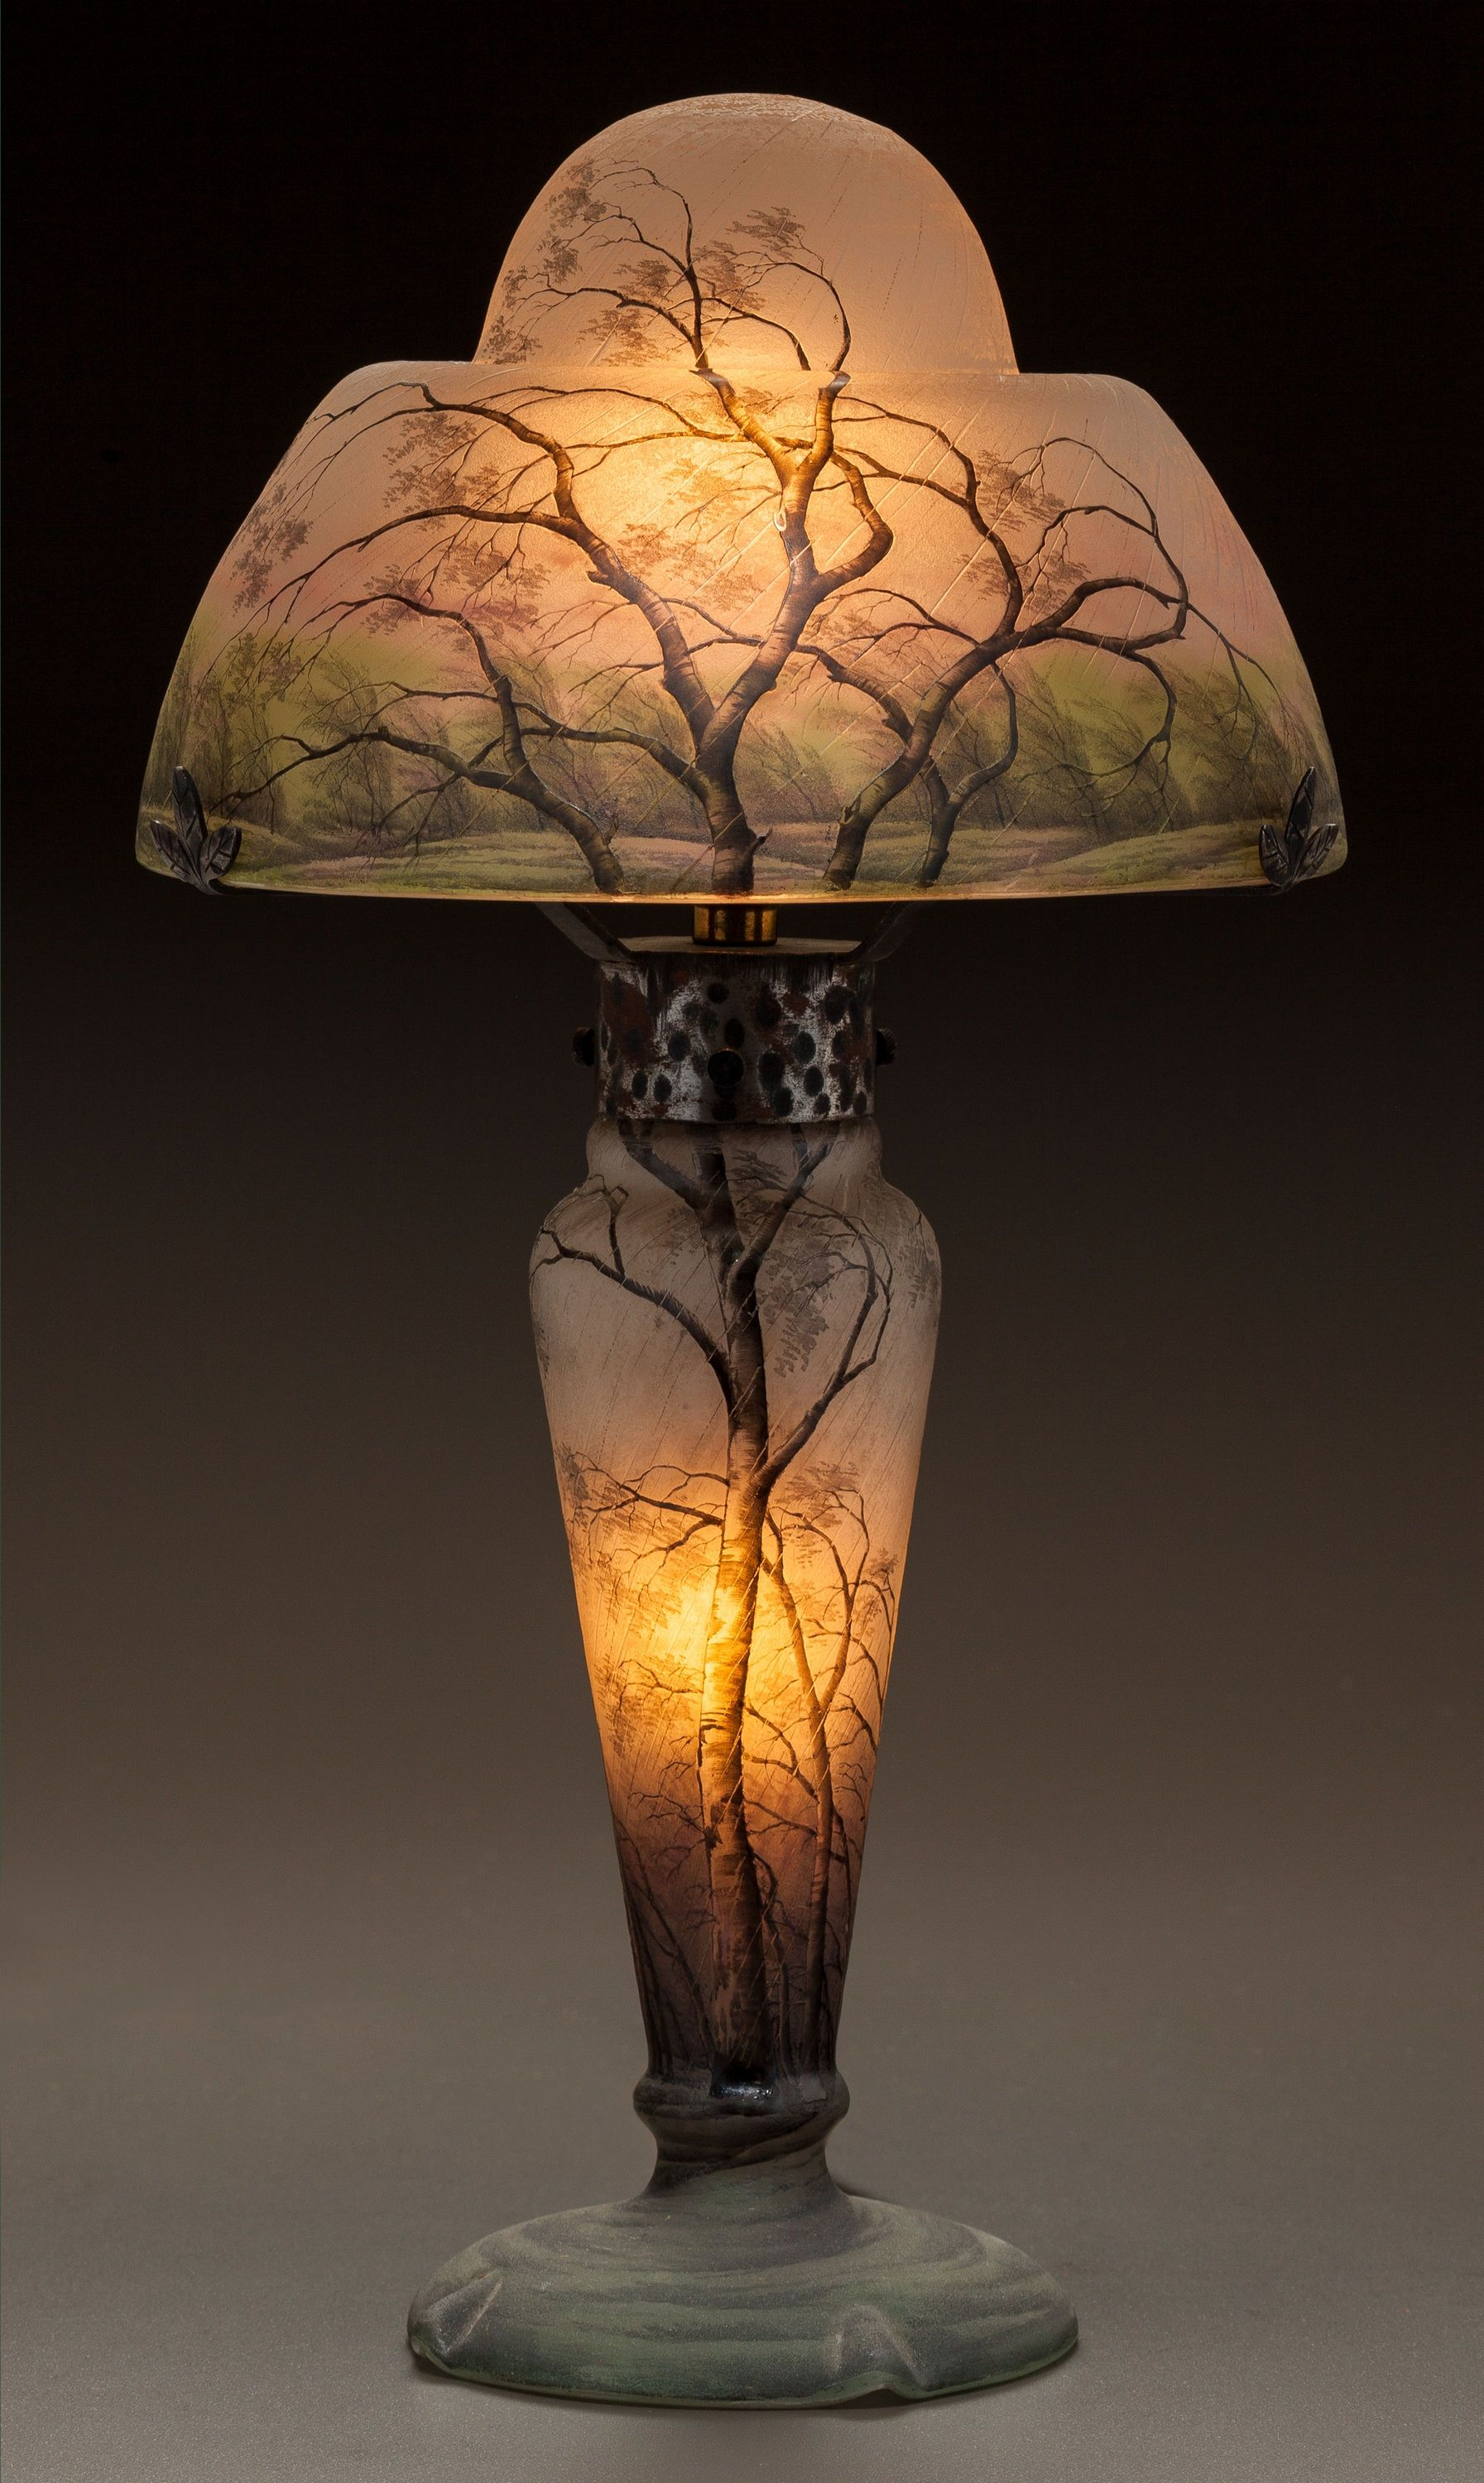 DAUM ETCHED AND ENAMELED GLASS RAIN LAMP Circa 1900 En